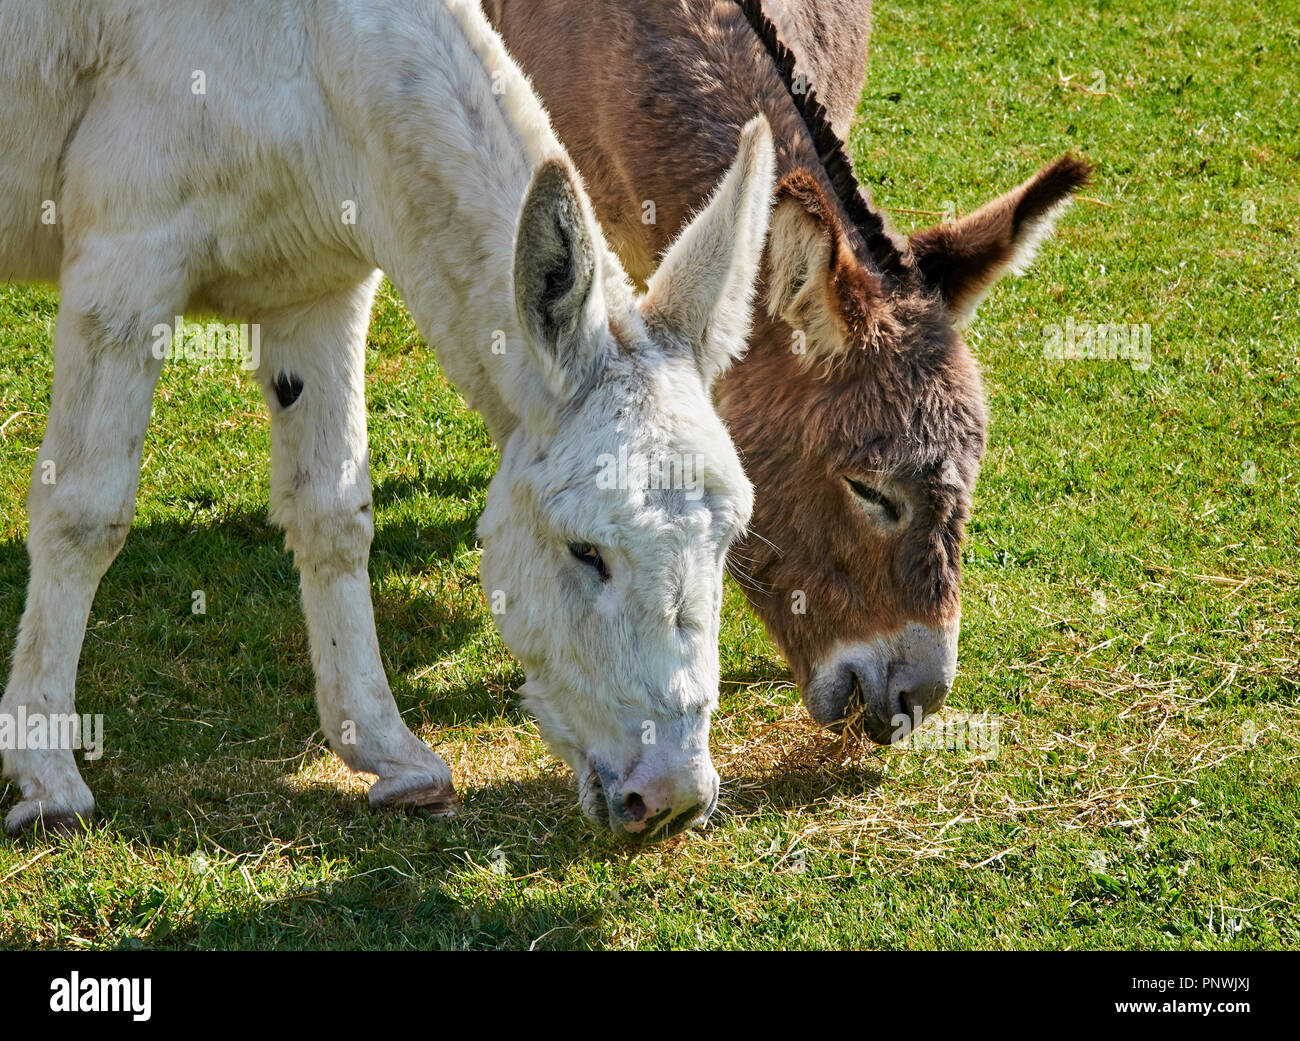 Two donkeys grazing side by side - Stock Image